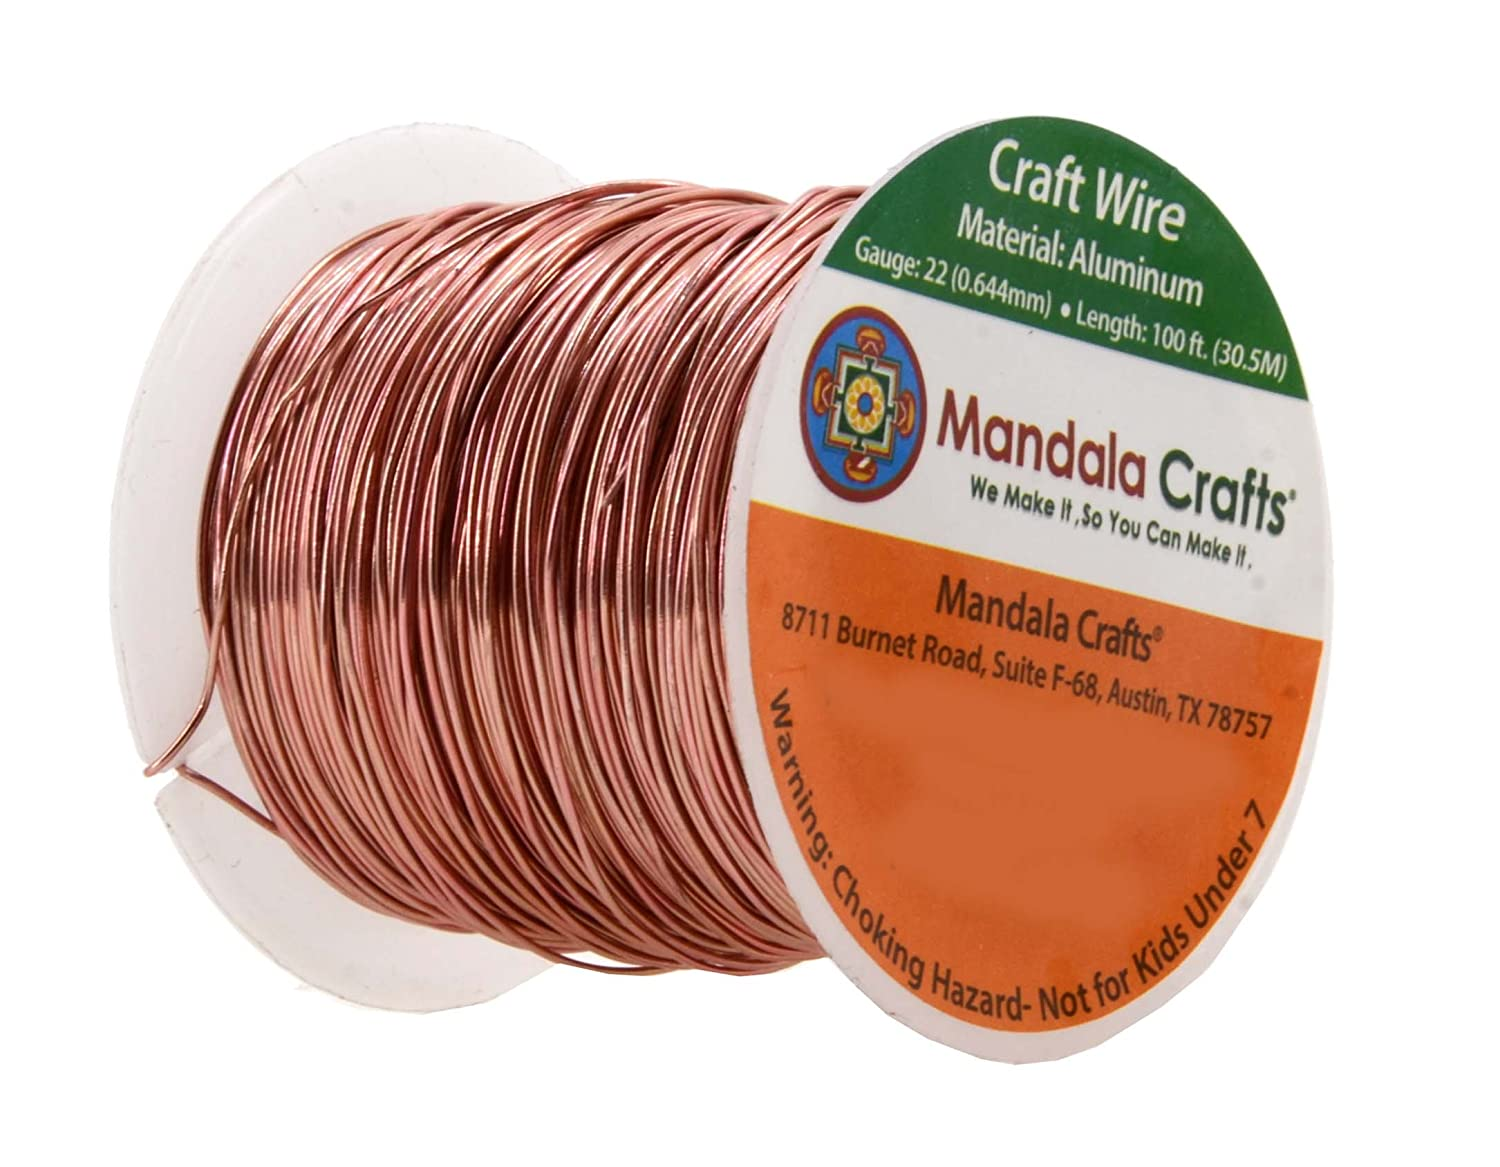 Mandala Crafts 12 14 16 18 20 22 Gauge Anodized Jewelry Aluminum Wiring Hazards Making Beading Floral Colored Craft Wire Copper